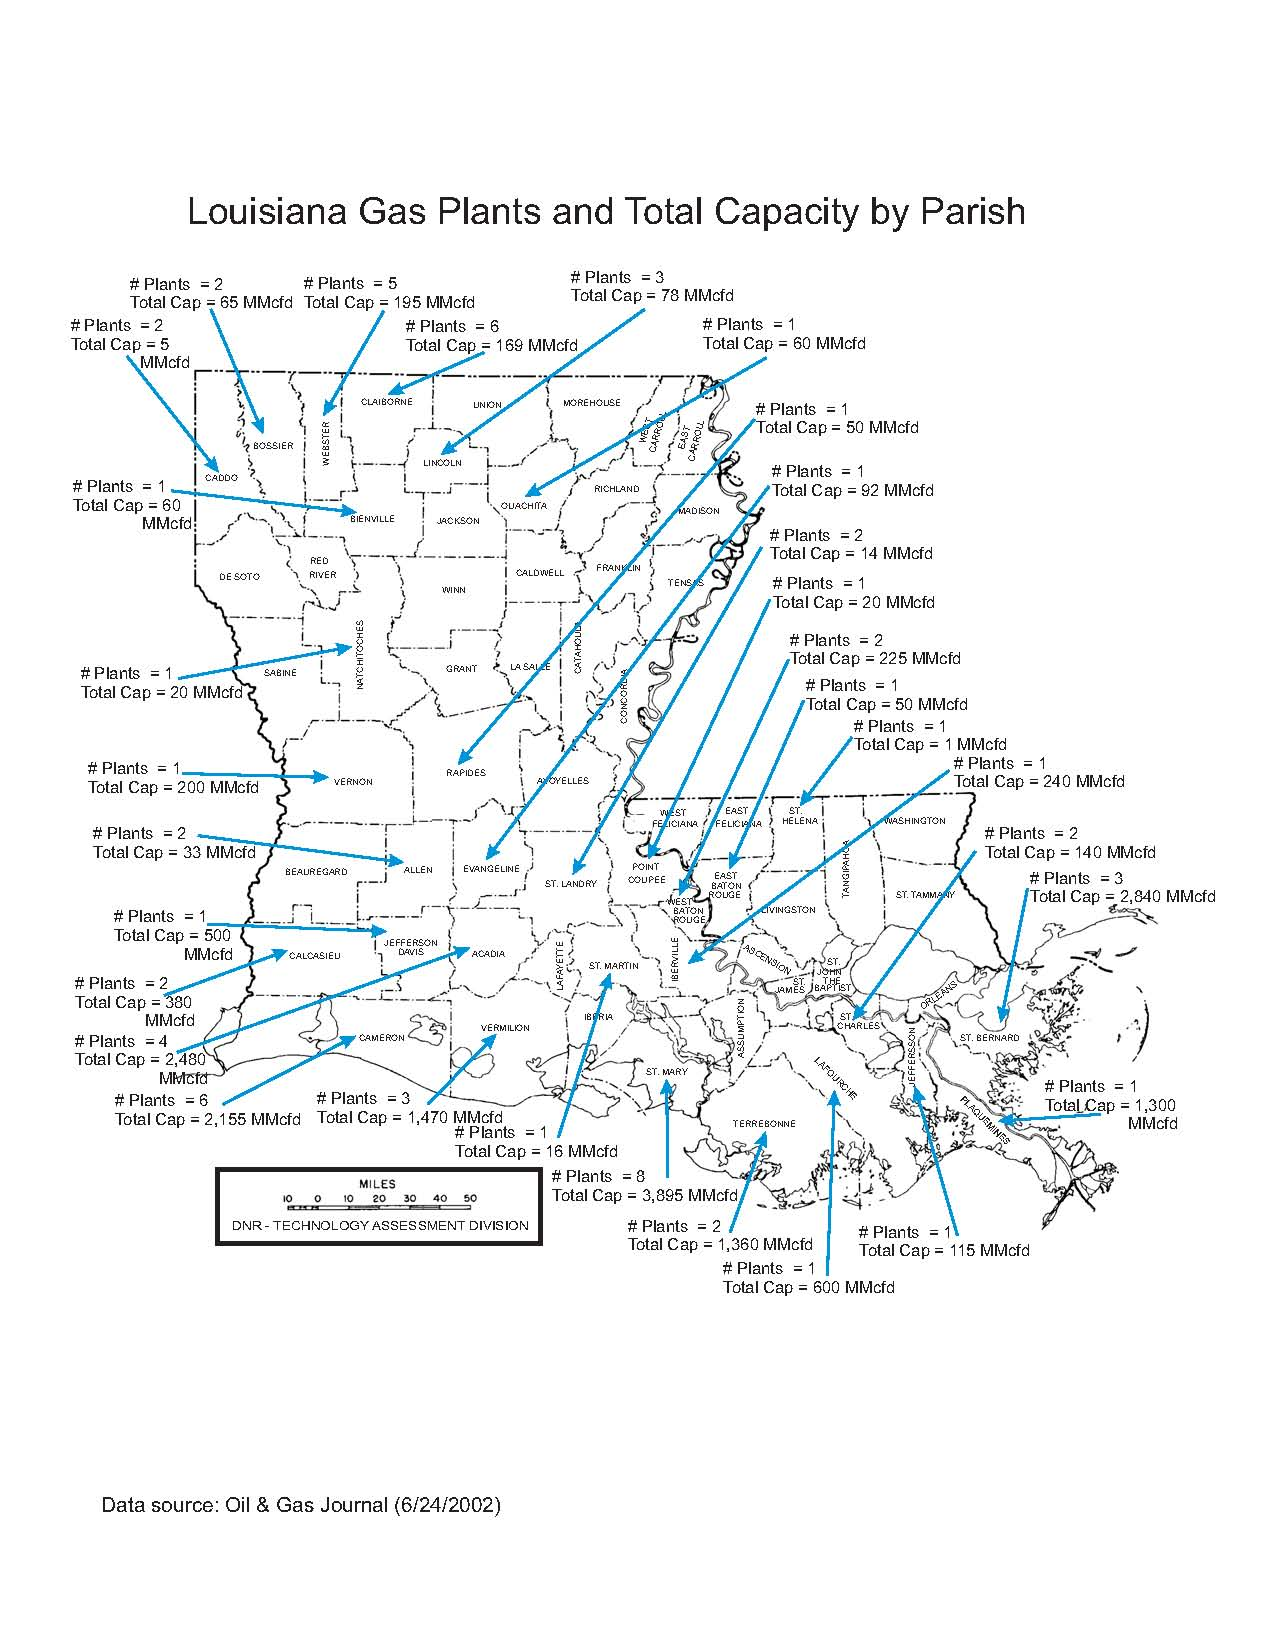 Department Of Natural Resources State Of Louisiana - Us-oil-refineries-map